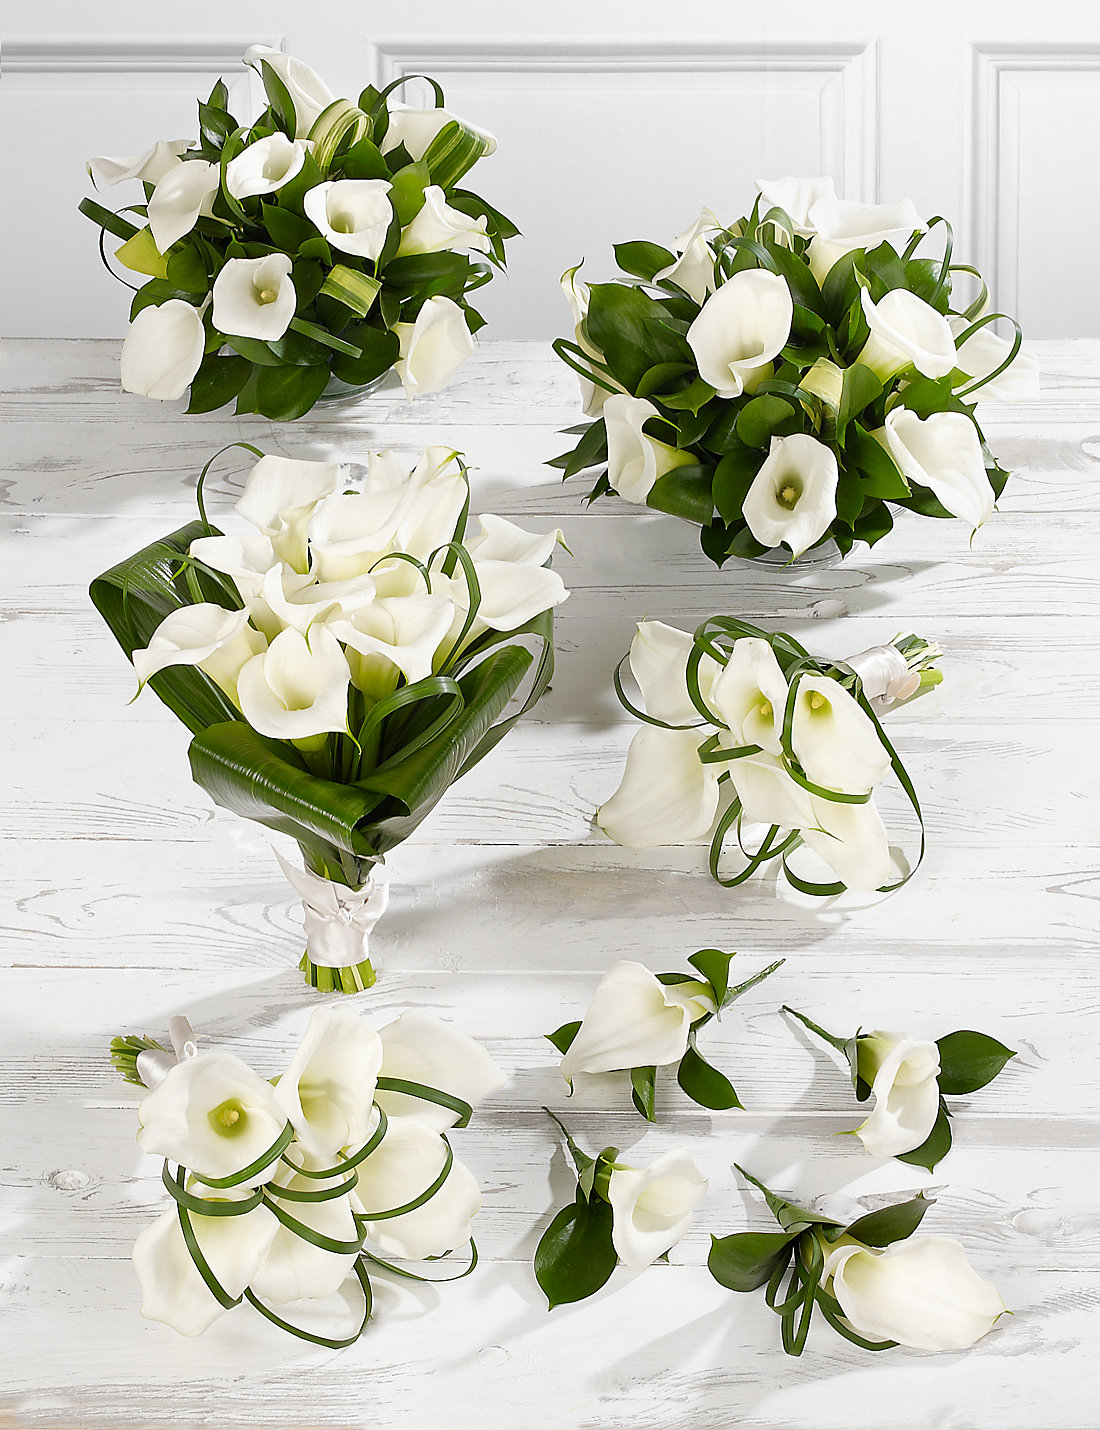 White calla lily wedding flowers collection 3 ms white calla lily wedding flowers collection 3 dhlflorist Choice Image